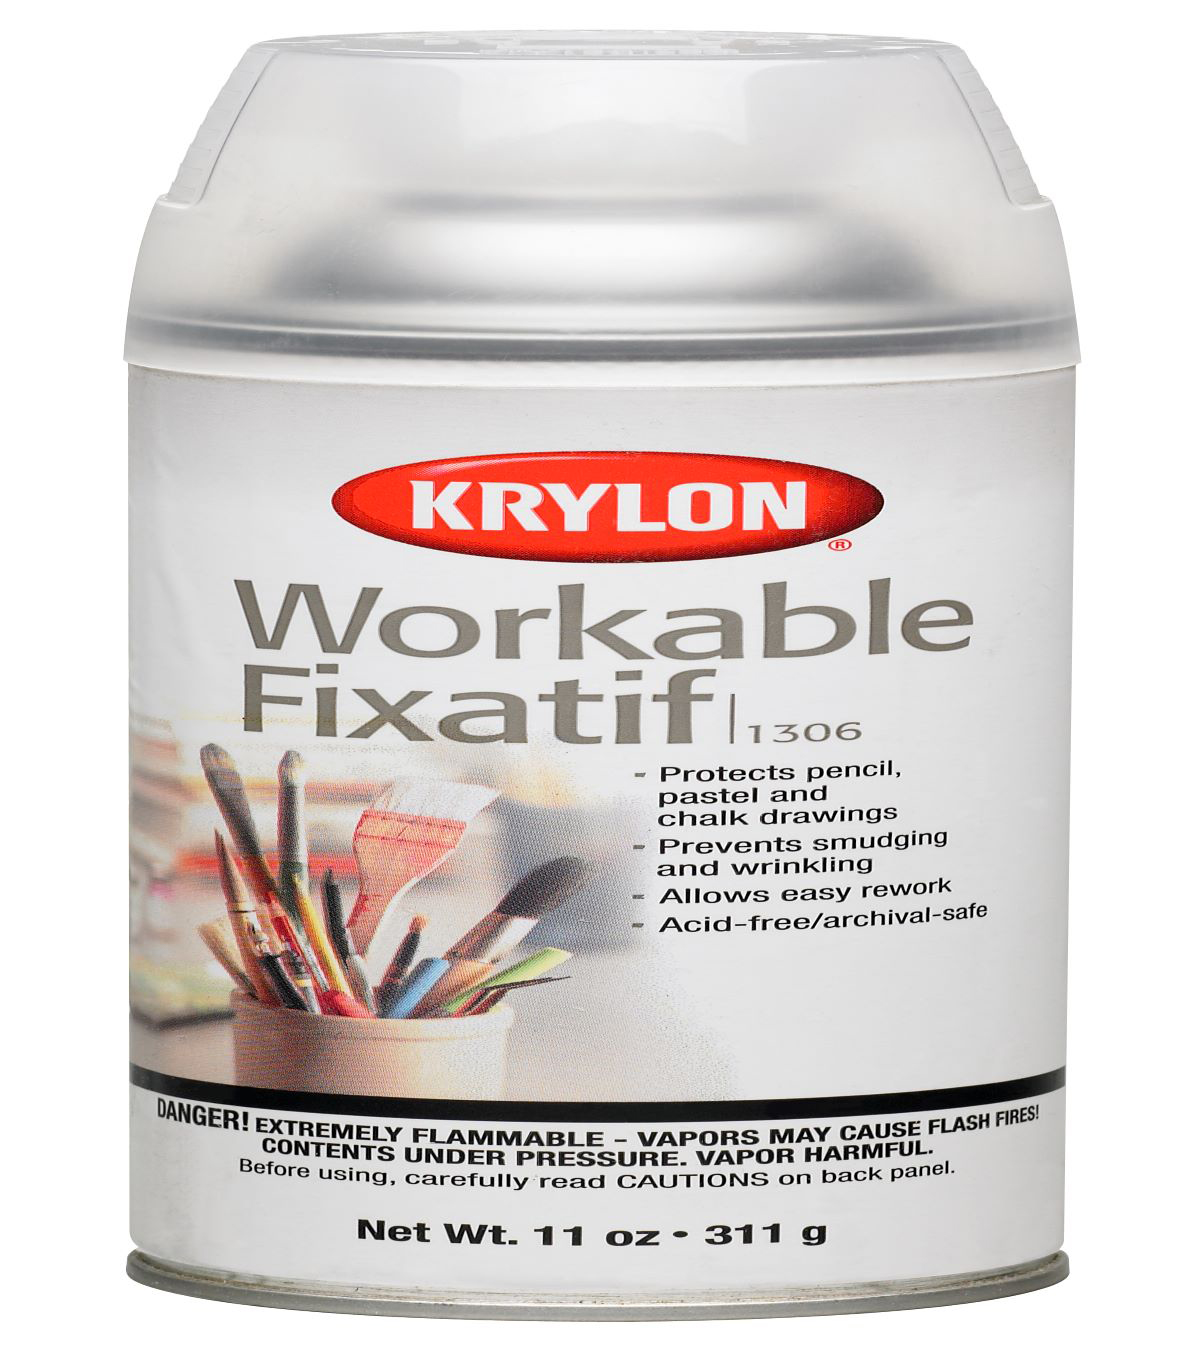 Krylon Workable Fixatif Spray-11 oz.